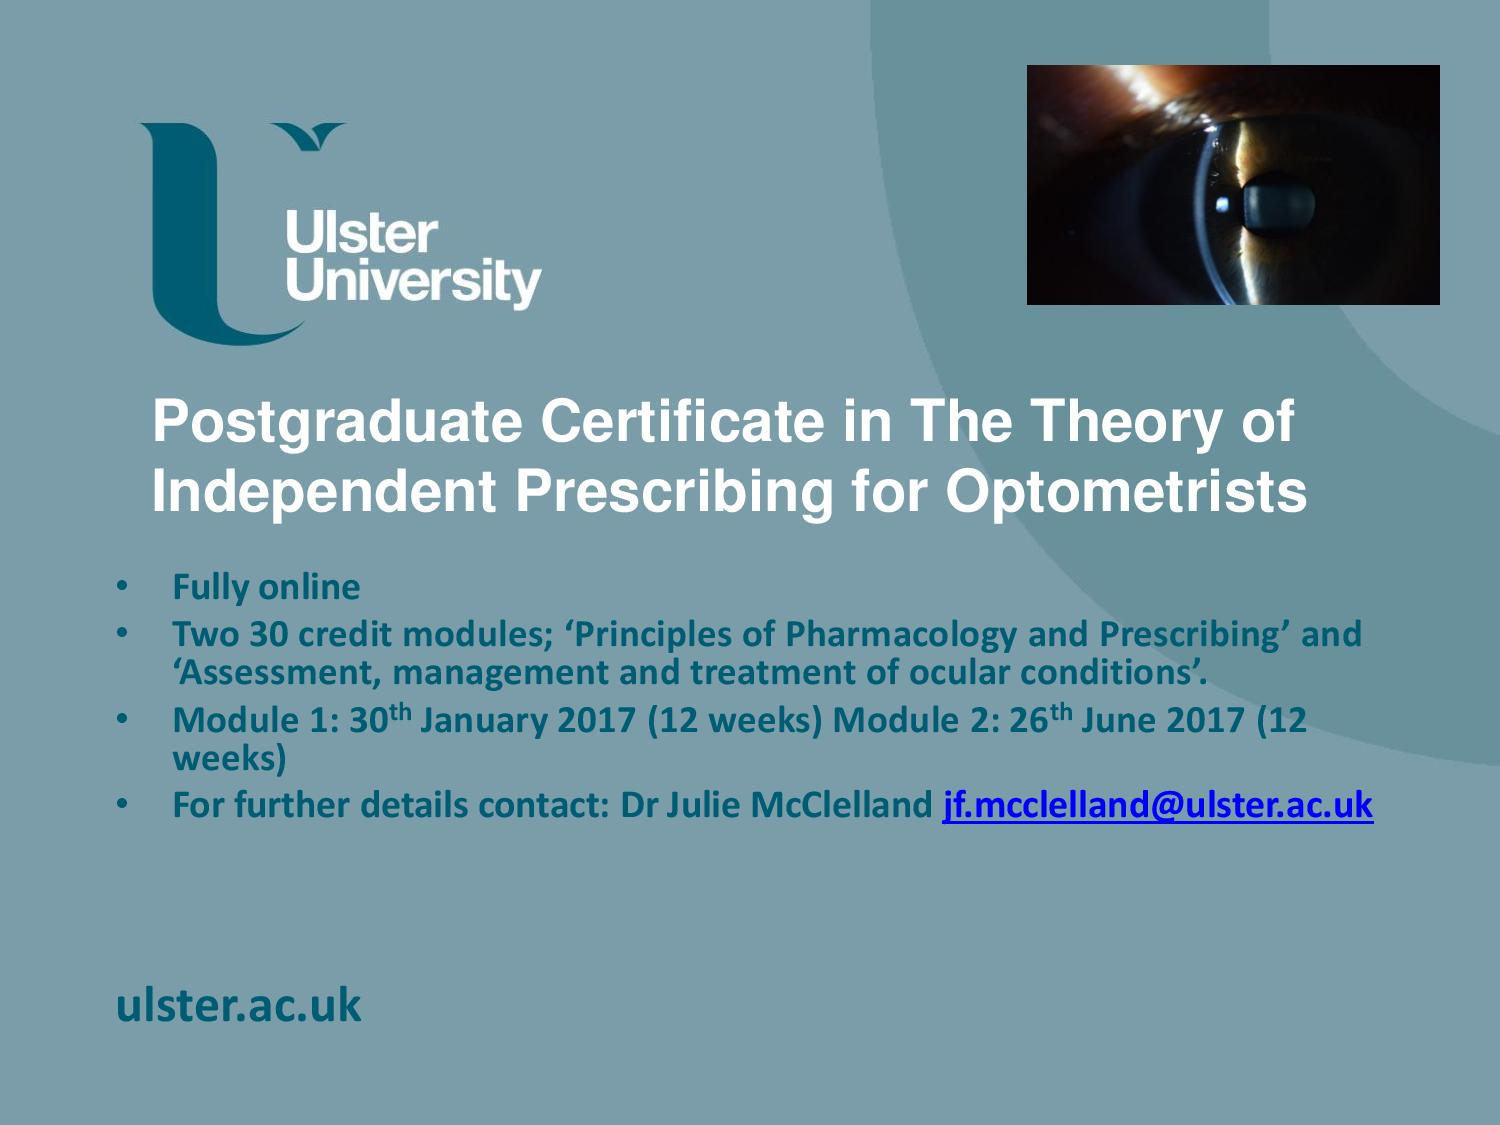 flyer-postgraduate-certificate-in-the-theory-of-independent-prescribing-2016-17-page-001